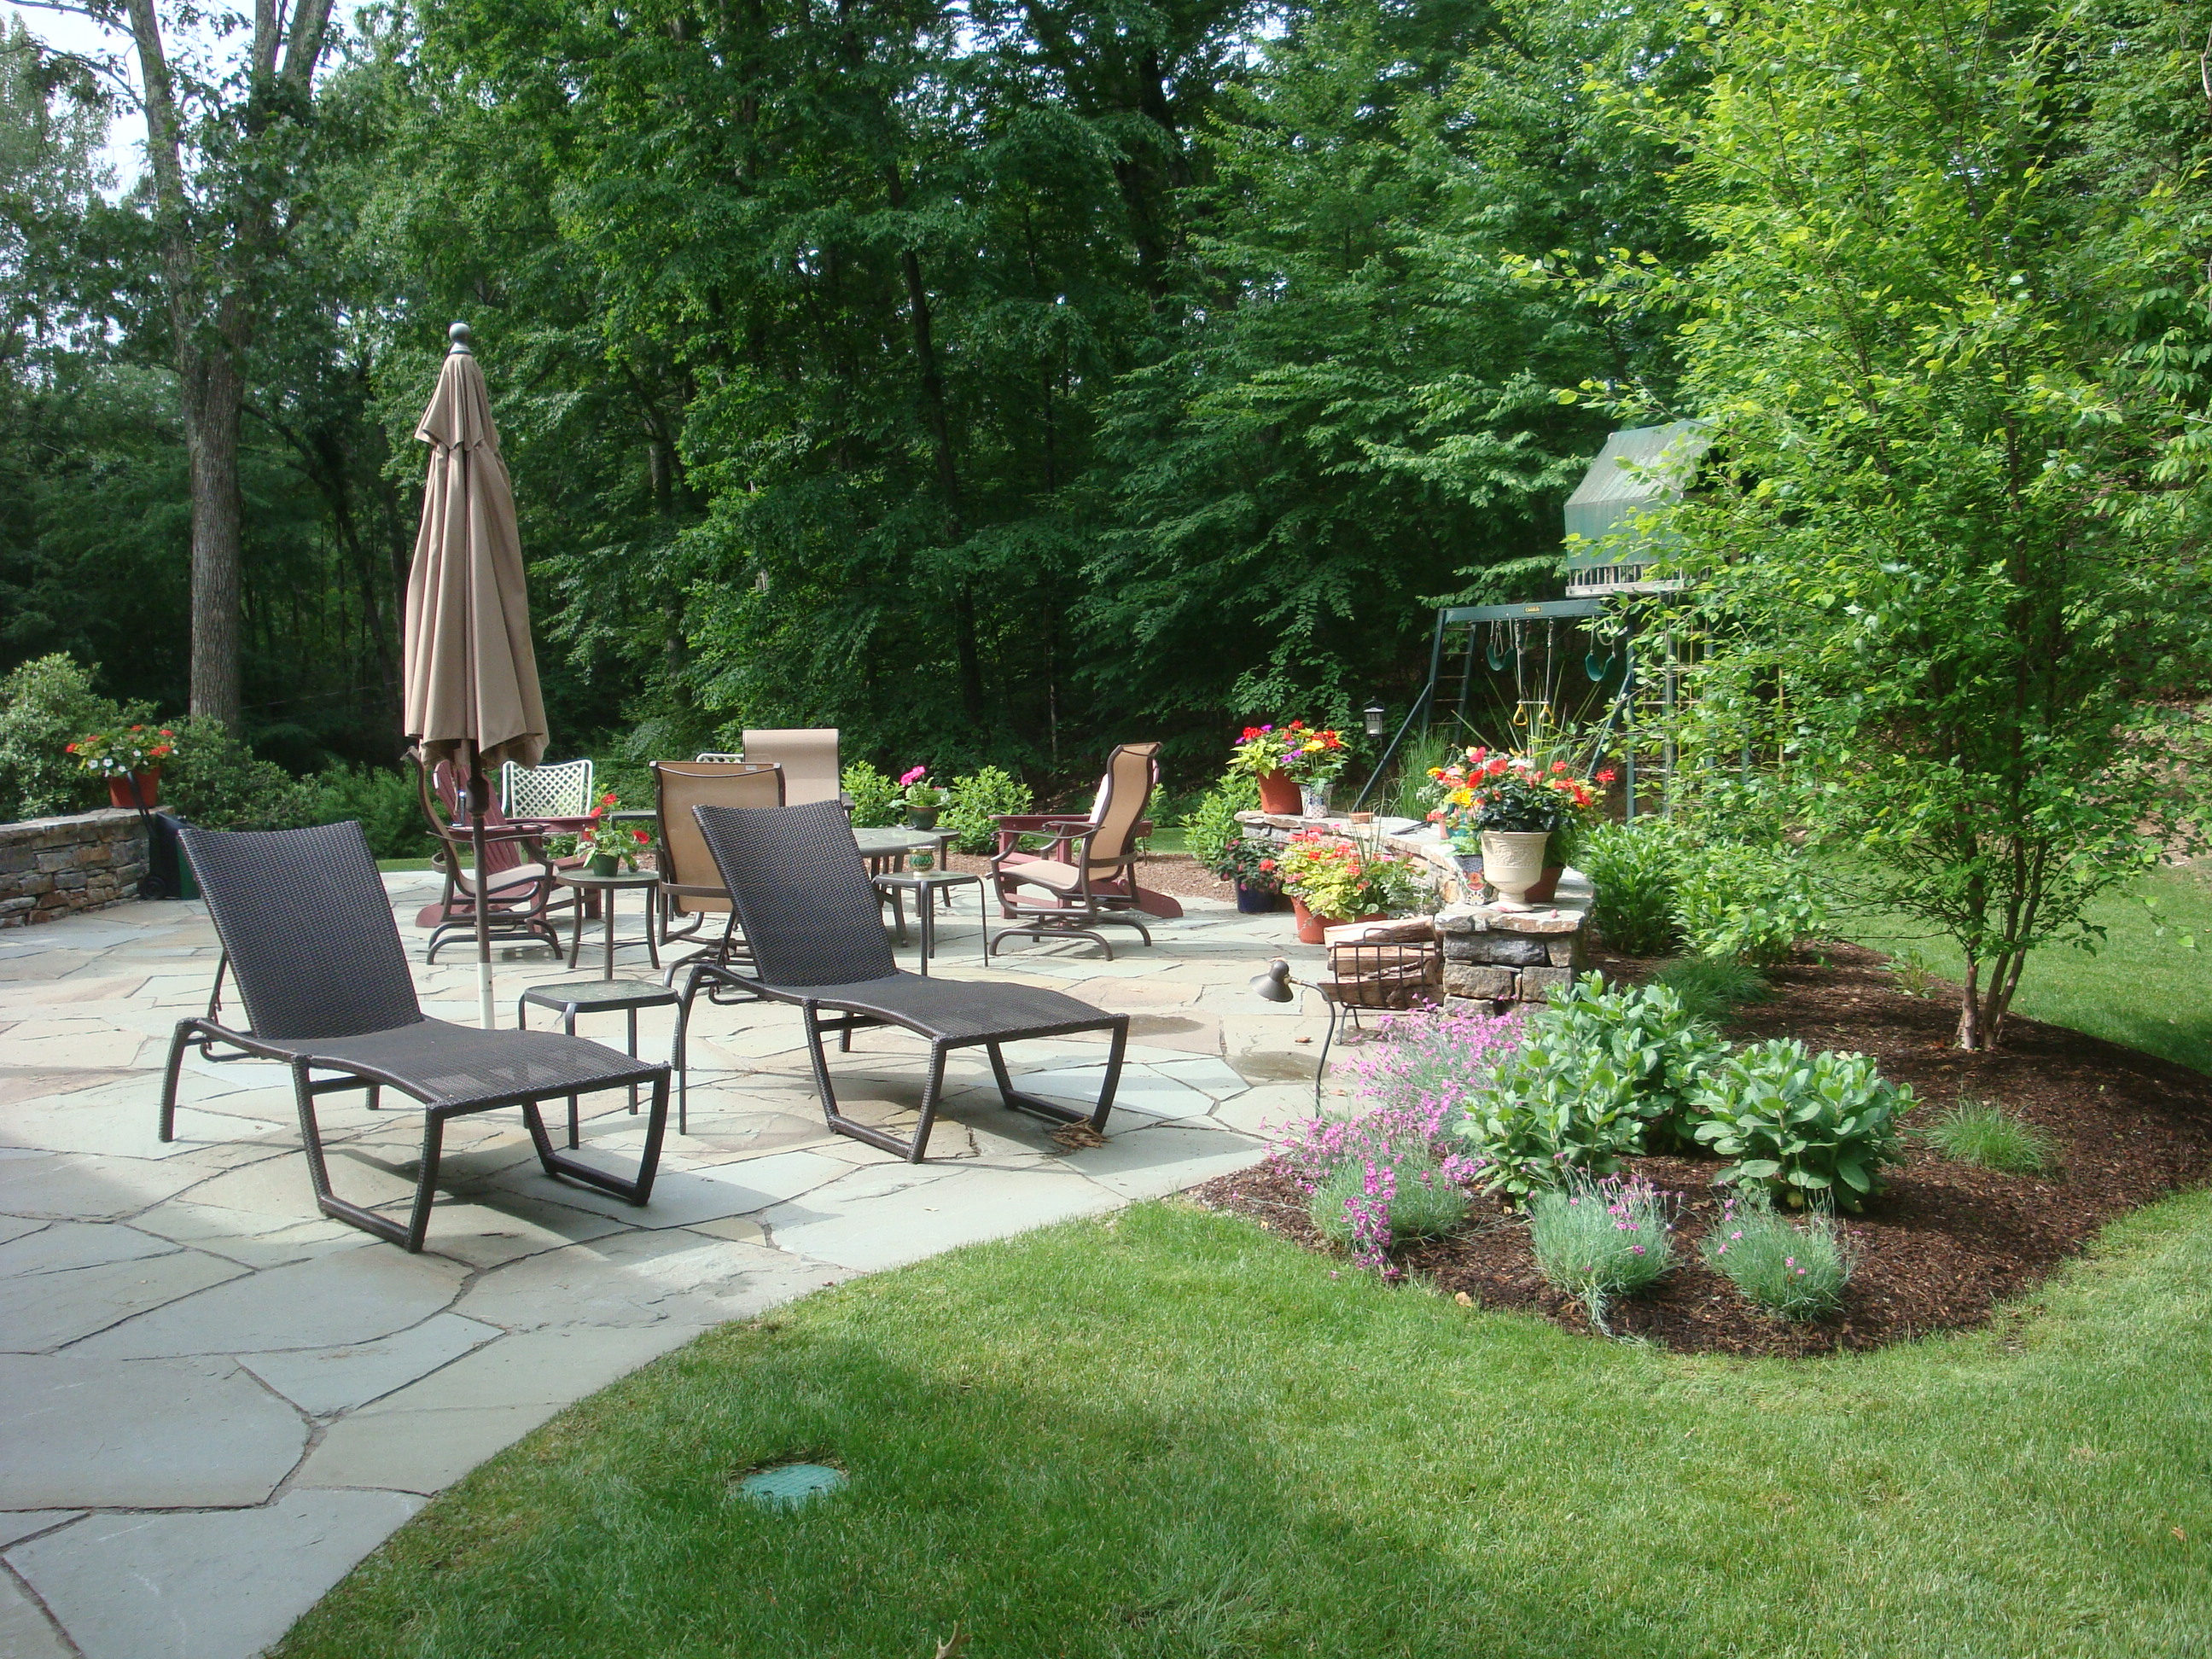 Patios garden designers roundtable for Small patio landscaping